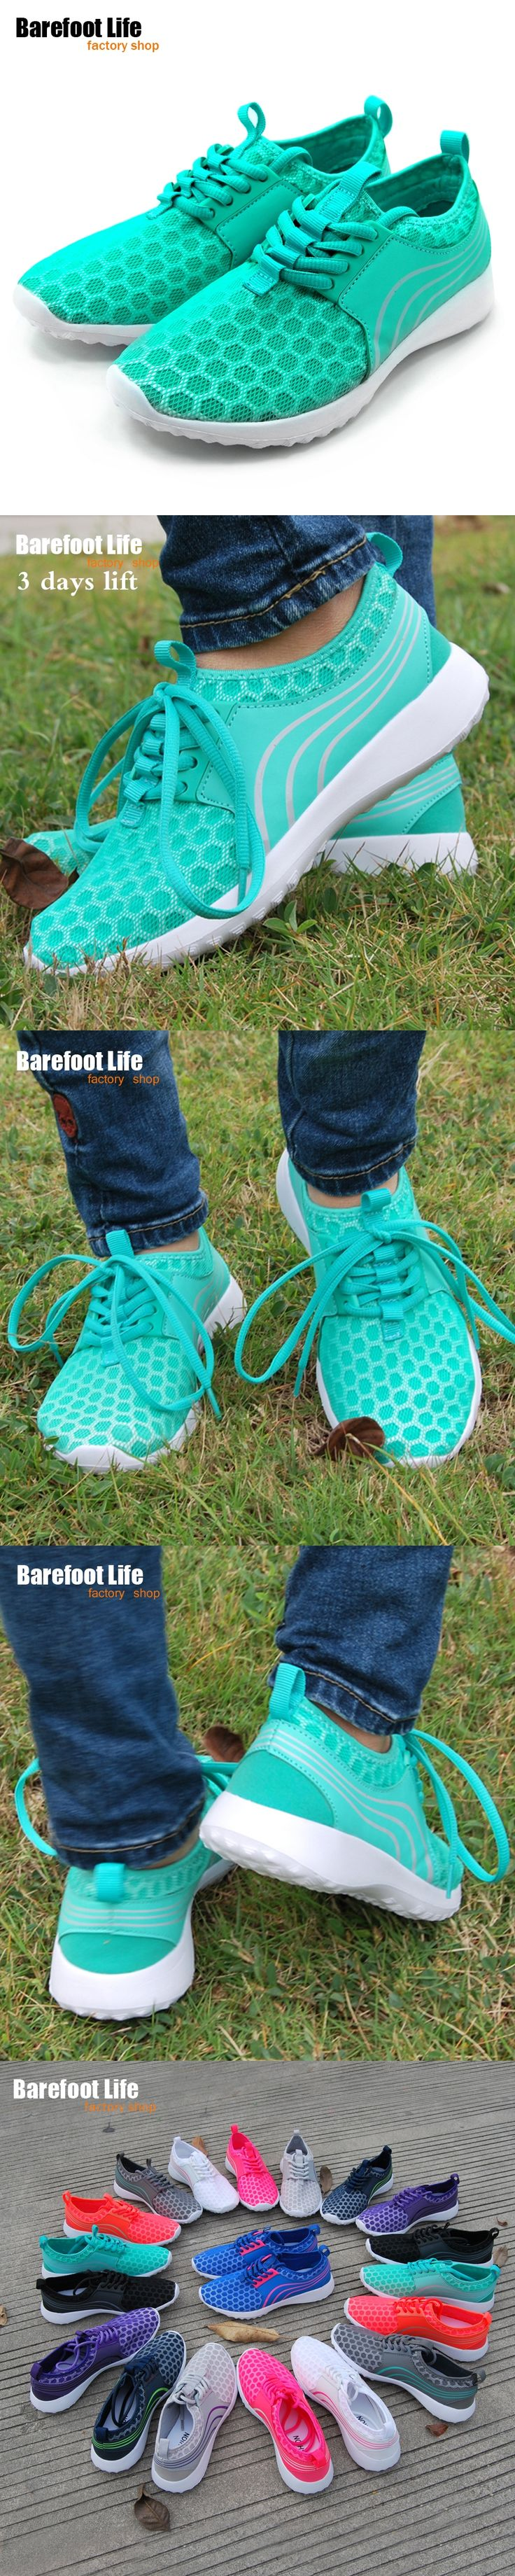 Barefoot Life Sneakers 2017 New Summer Breathable Cheap Women Men Running Shoes Sport Footwears Outdoor Athletic Jogging Shoes